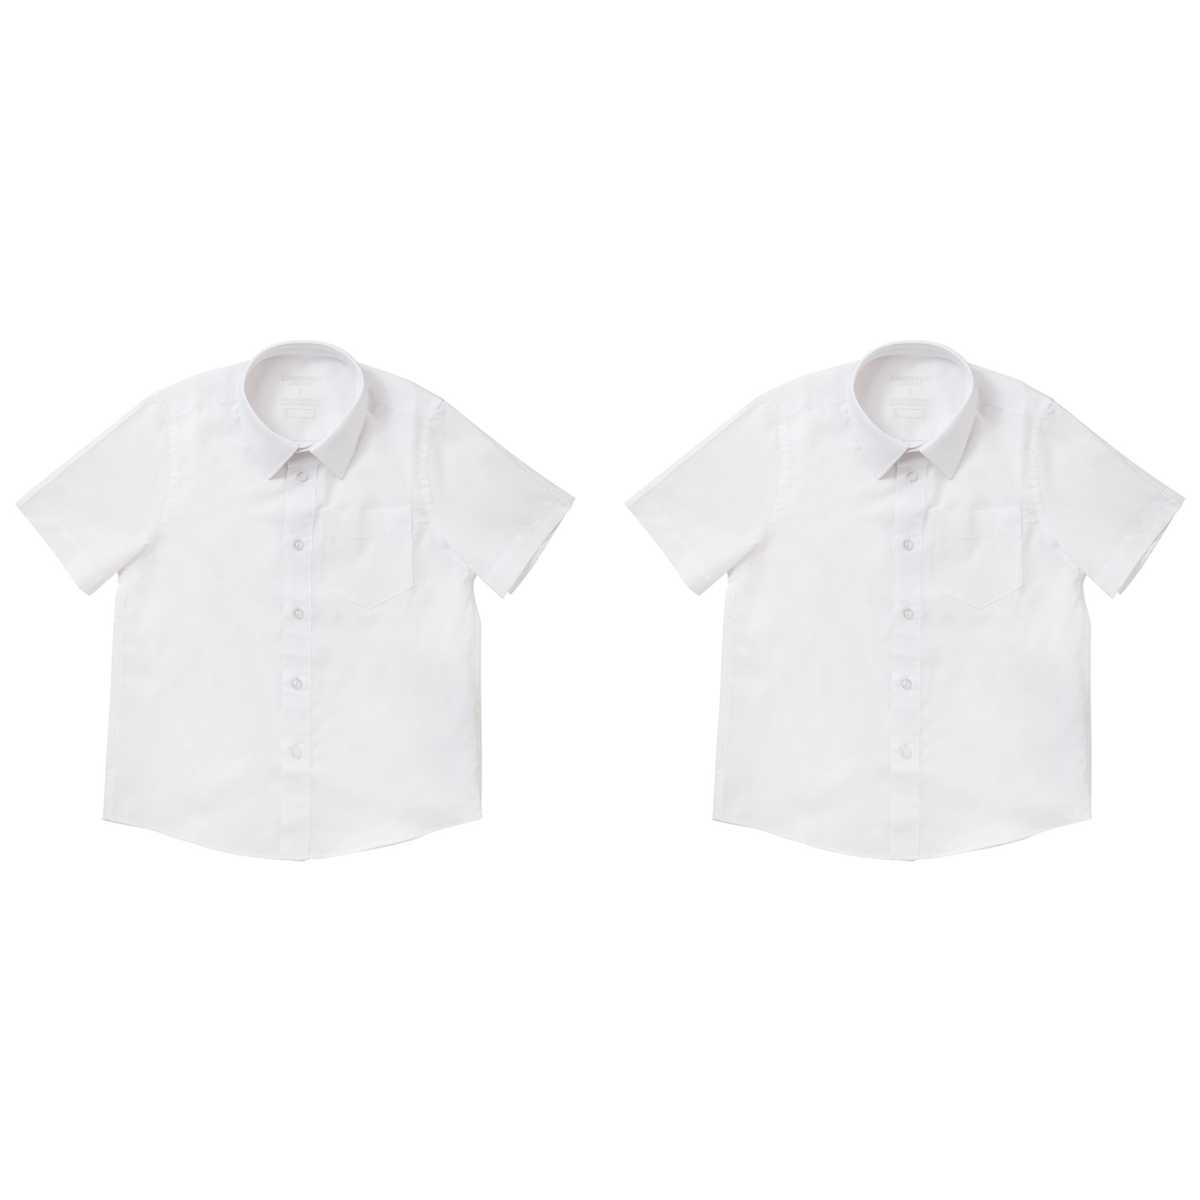 Big W School Shirts Emerson Junior Short Sleeve School Shirt 2 Pack Big W